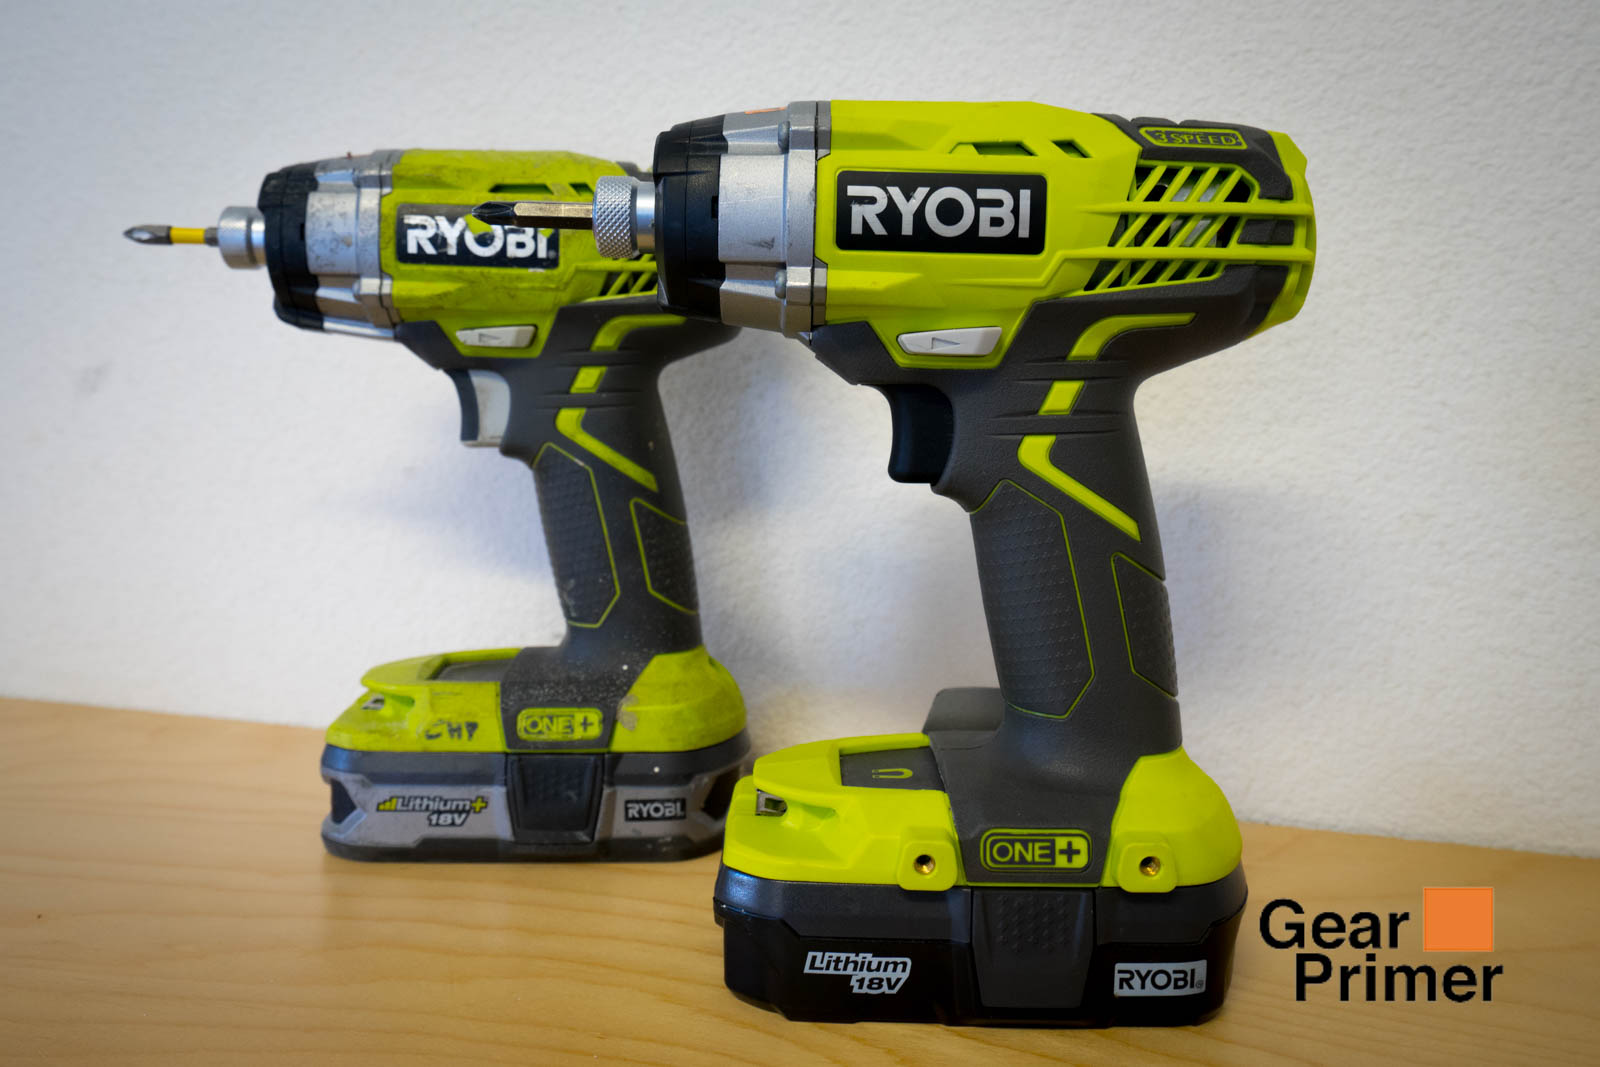 As Far The Design New Ryobi P237 Front Looks An Awful Lot Like P236 Back